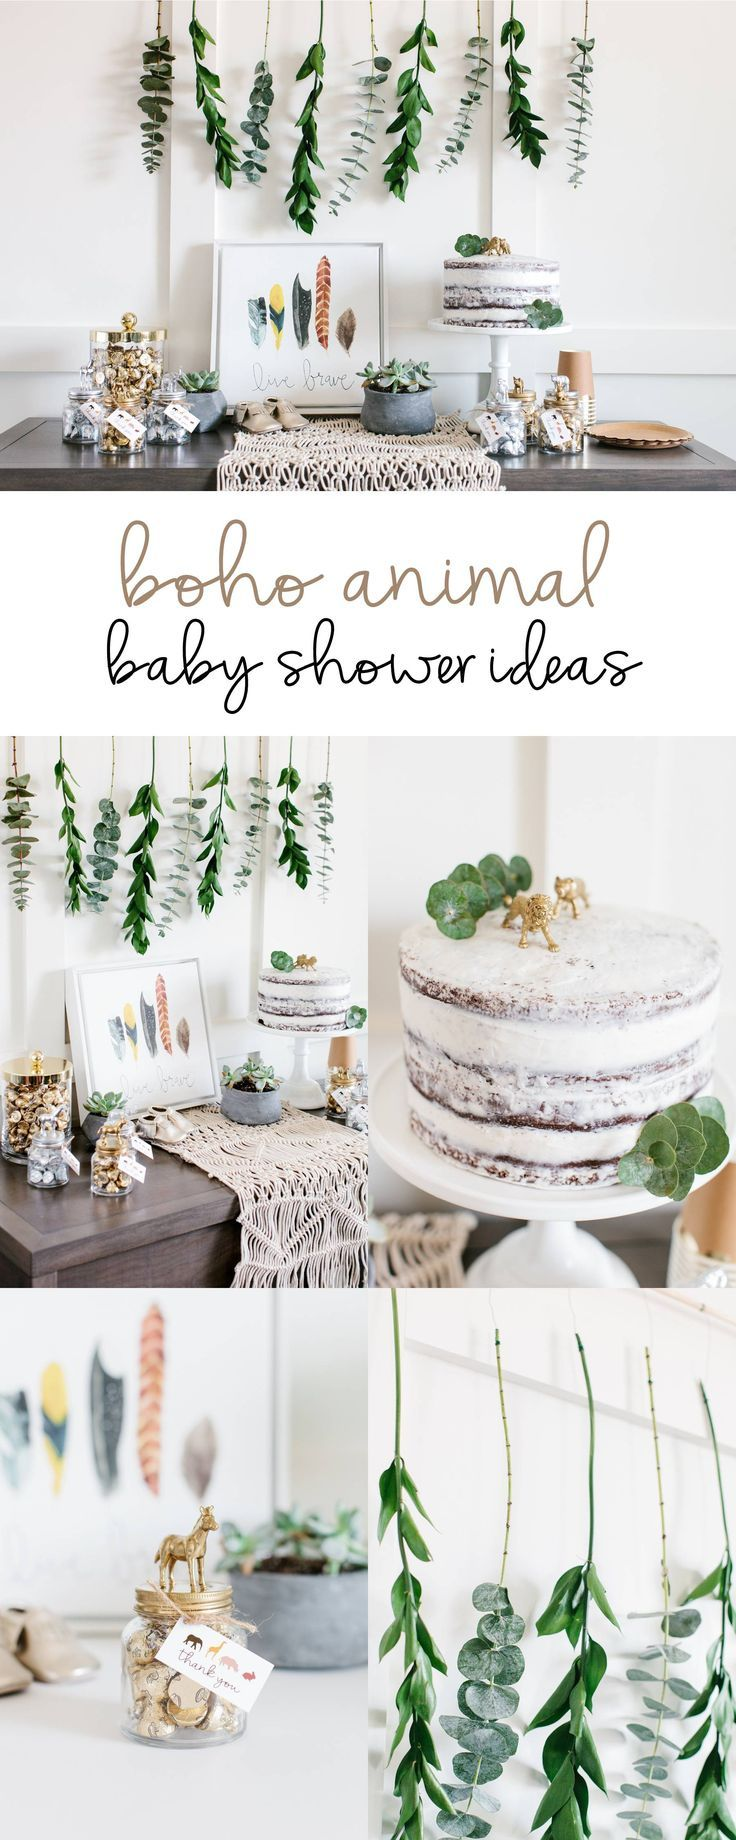 From kara s party ideas rustic dessert table display designed by - Boho Animal Baby Shower Ideas Styled By The Tomkat Studio